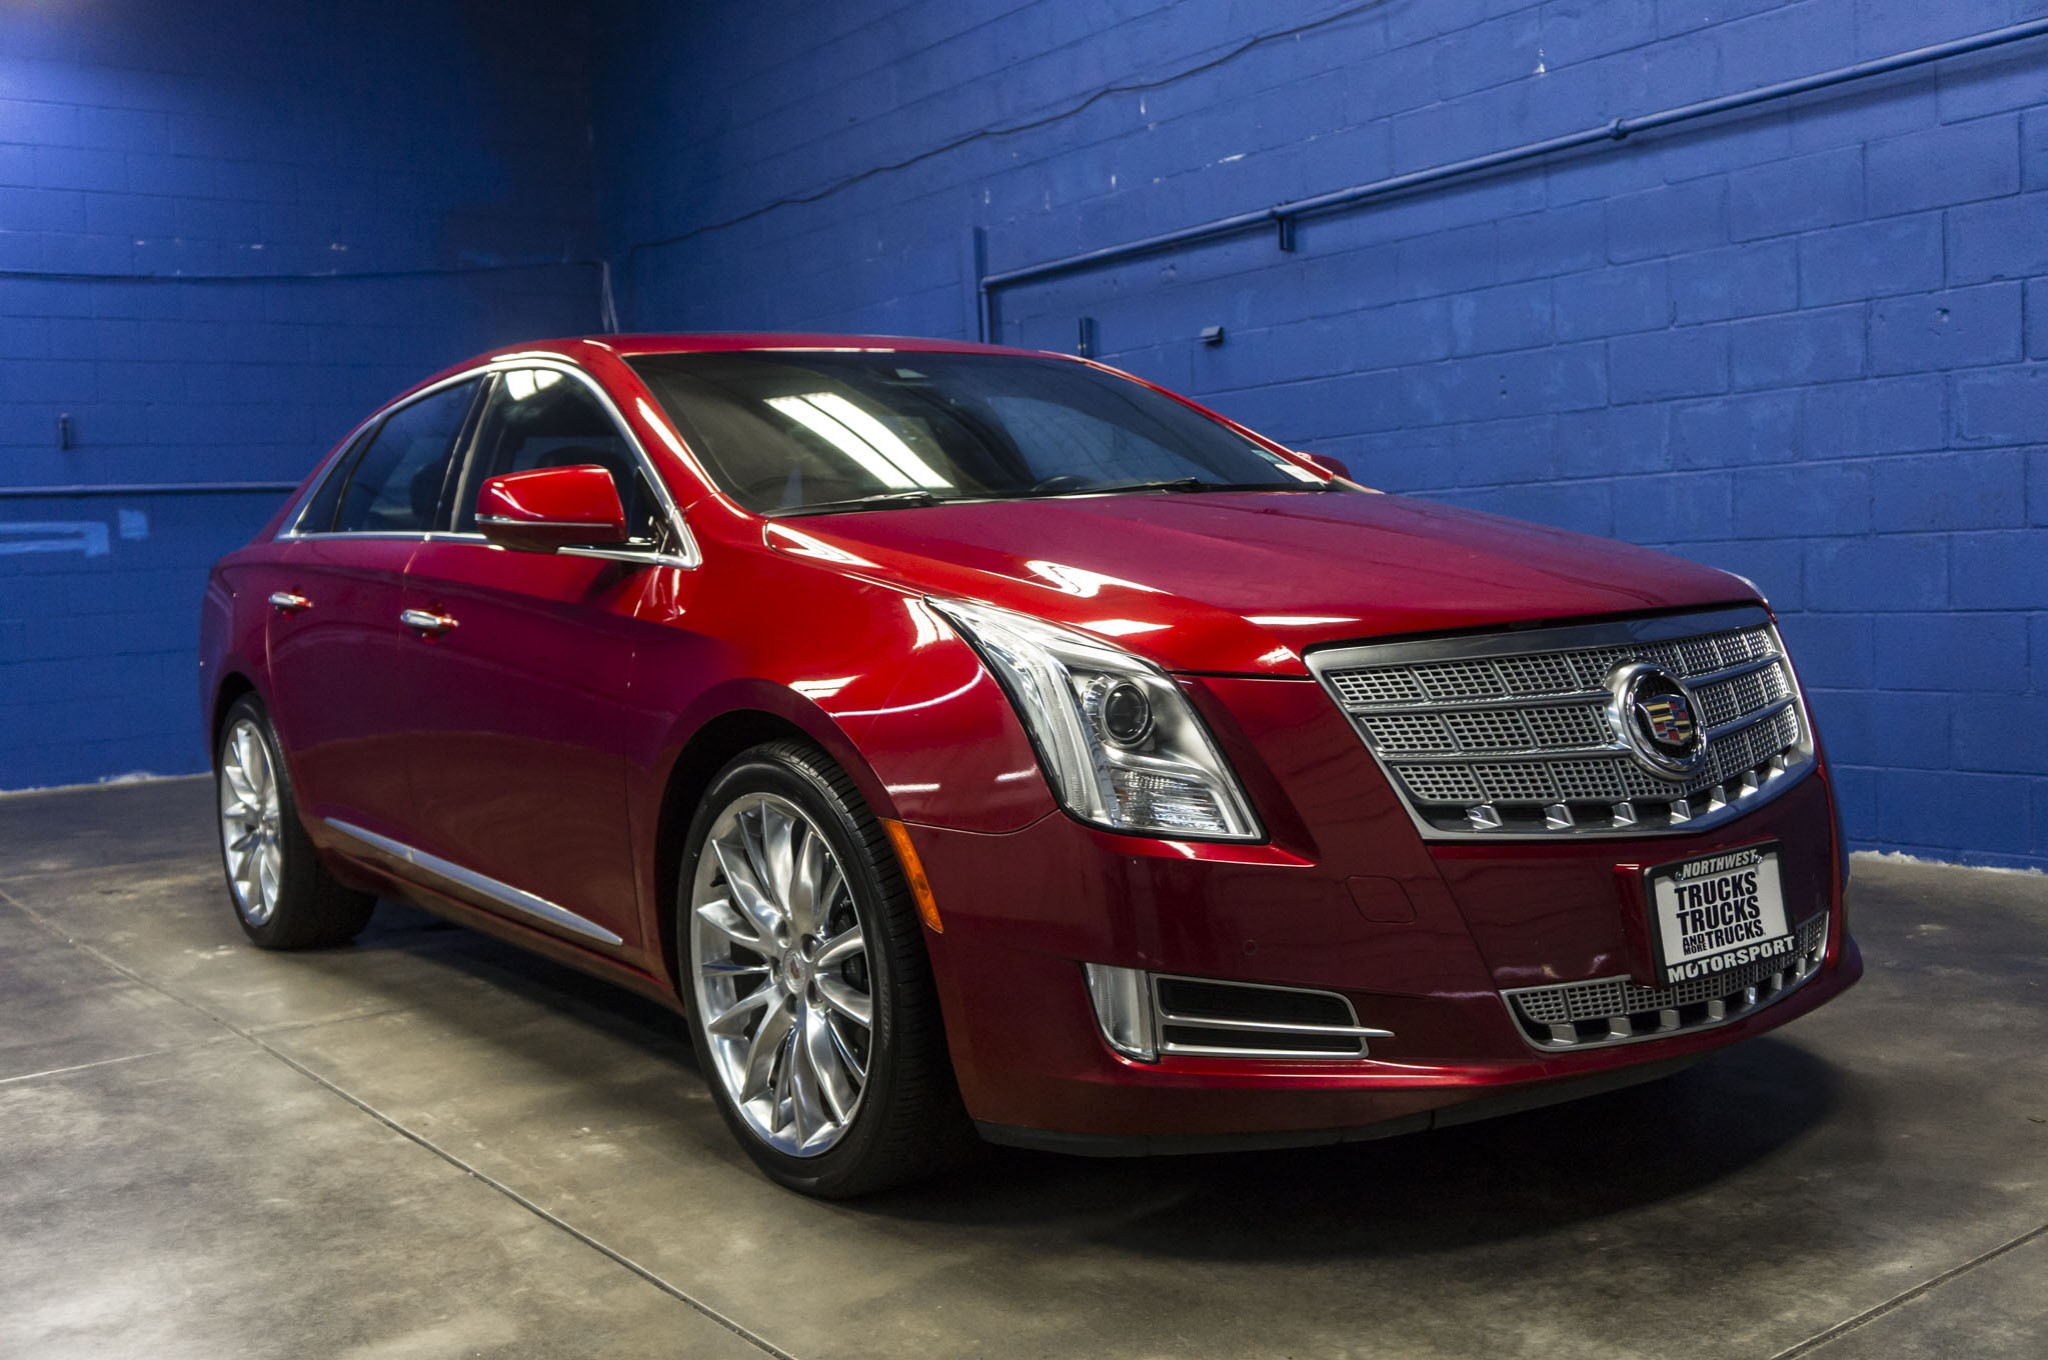 models hammond select baton sale rouge cadillac xts orleans new for near